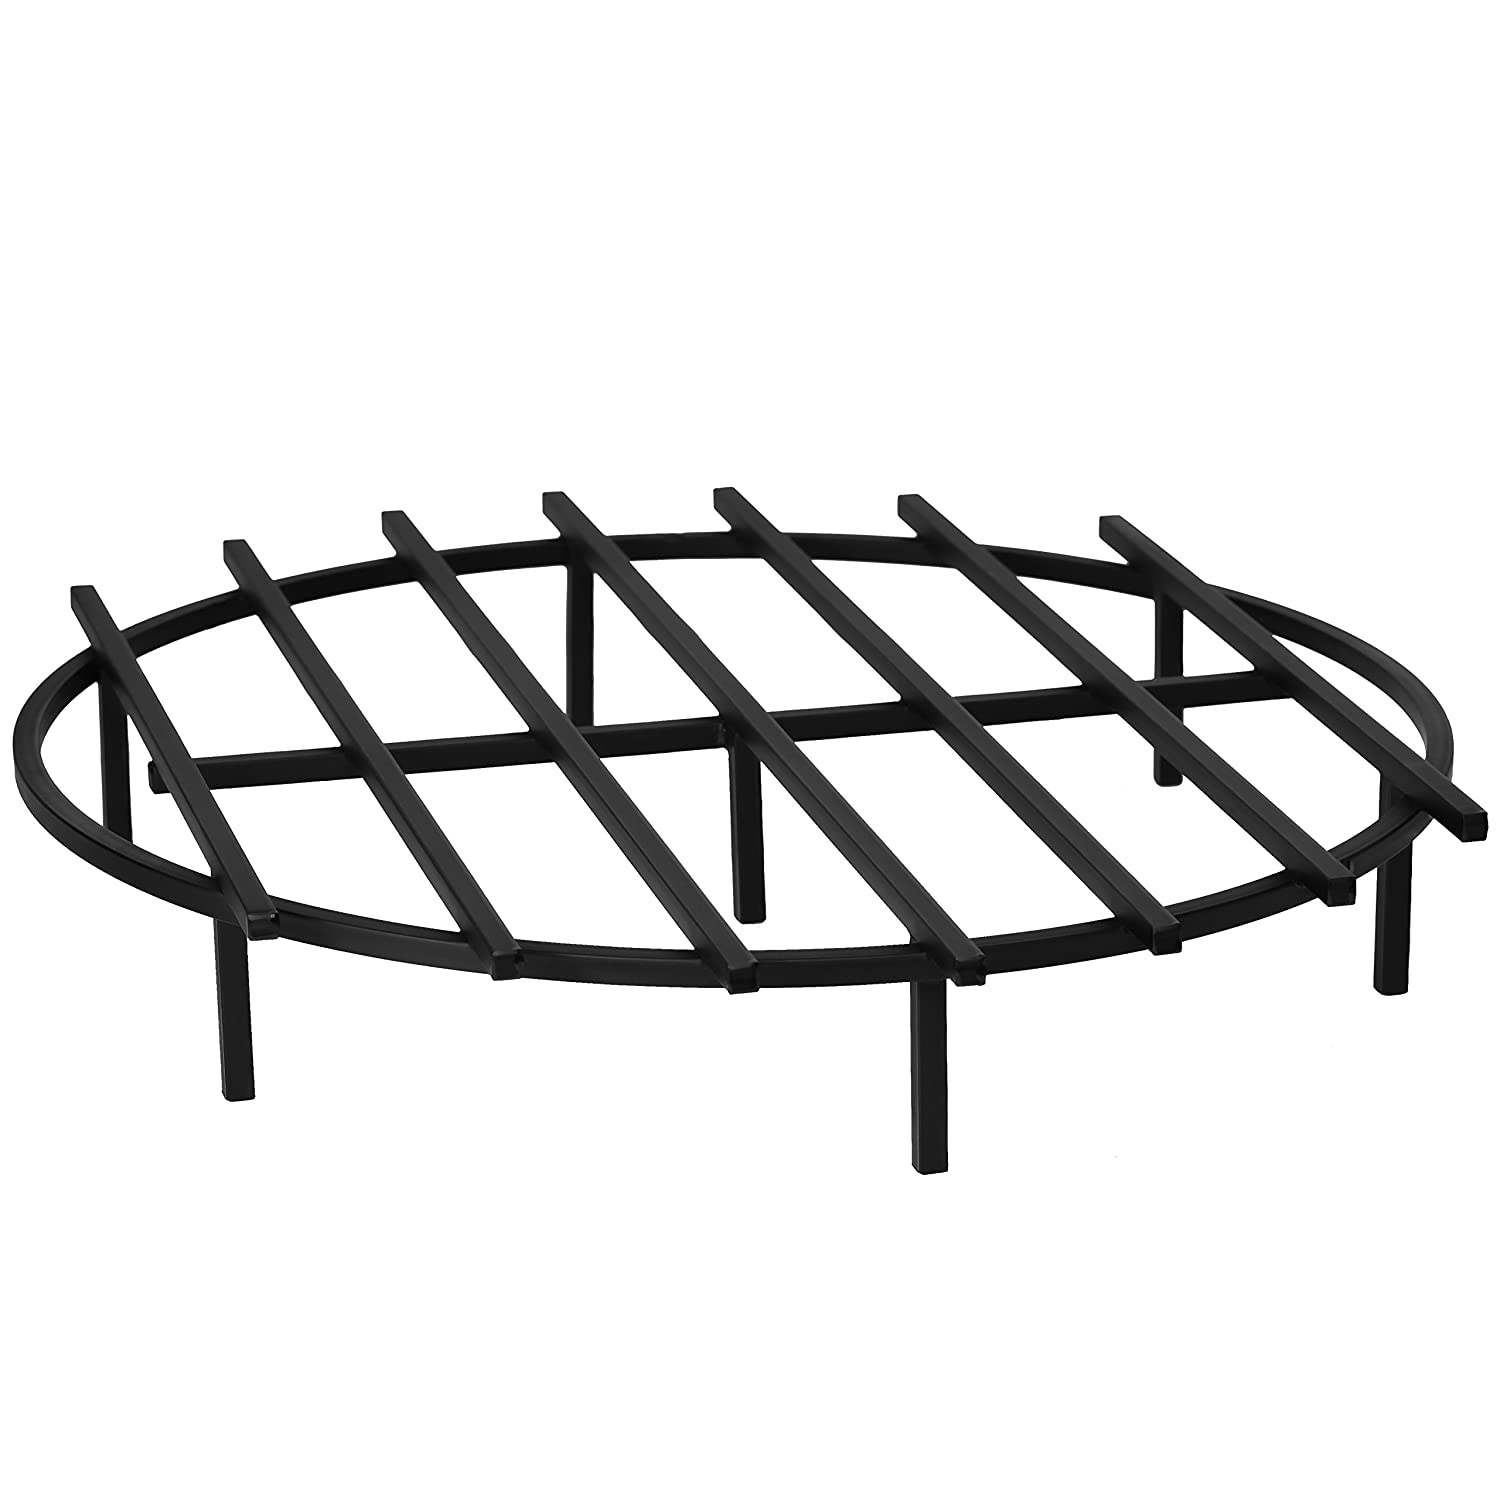 Heritage Products Classic Round Fire Pit Grate, 18 Inch Diameter - Made in the USA Federated Trade RGC-18